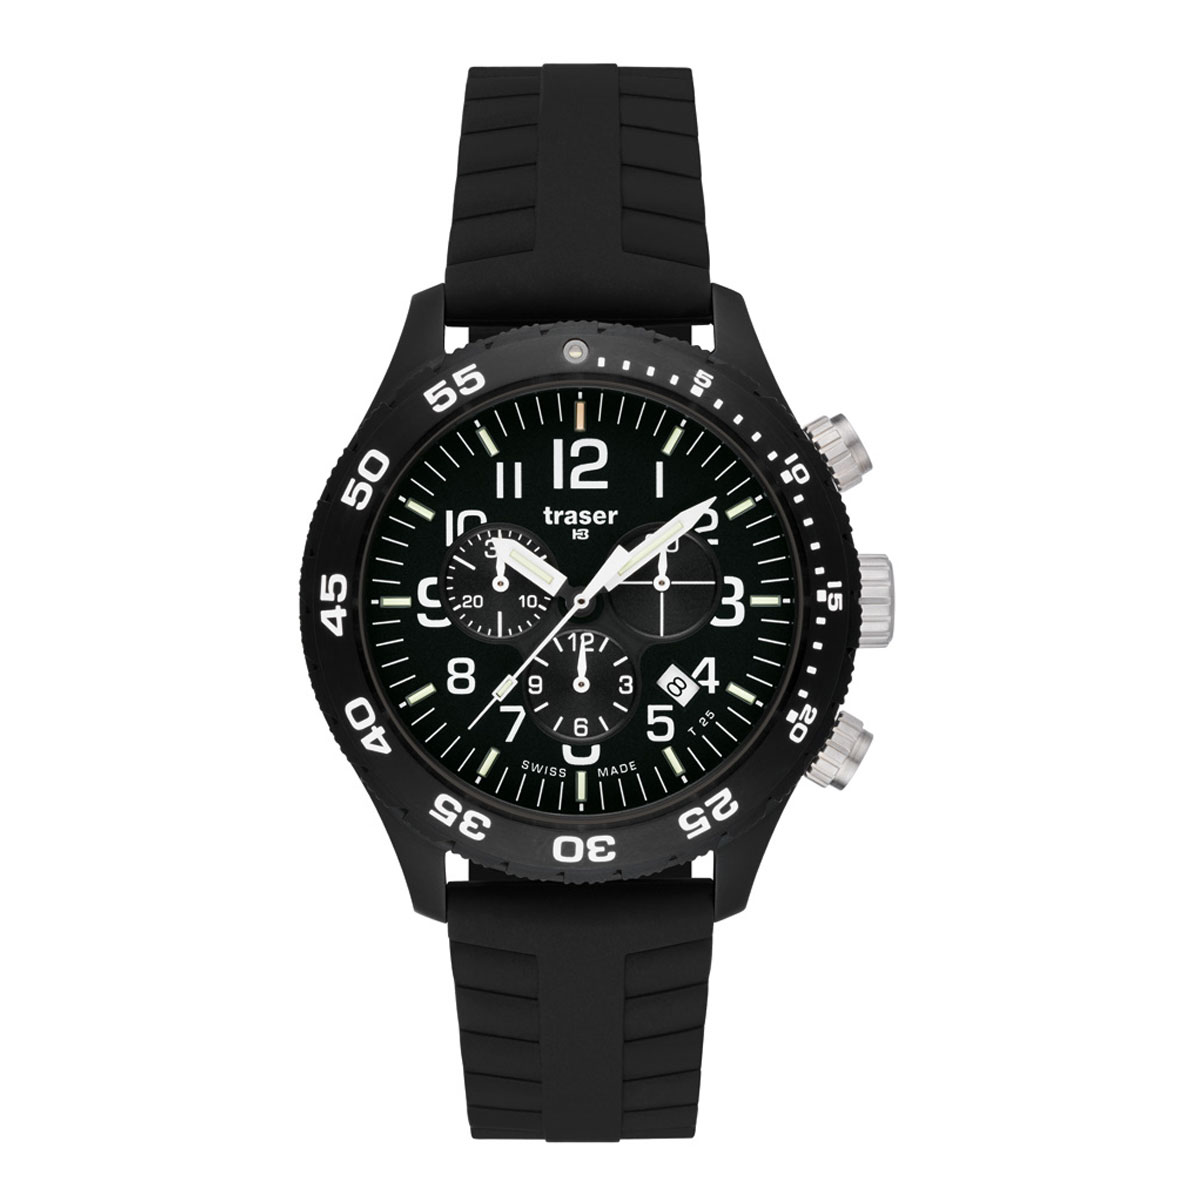 Officer Chronograph Pro / Silicone Band